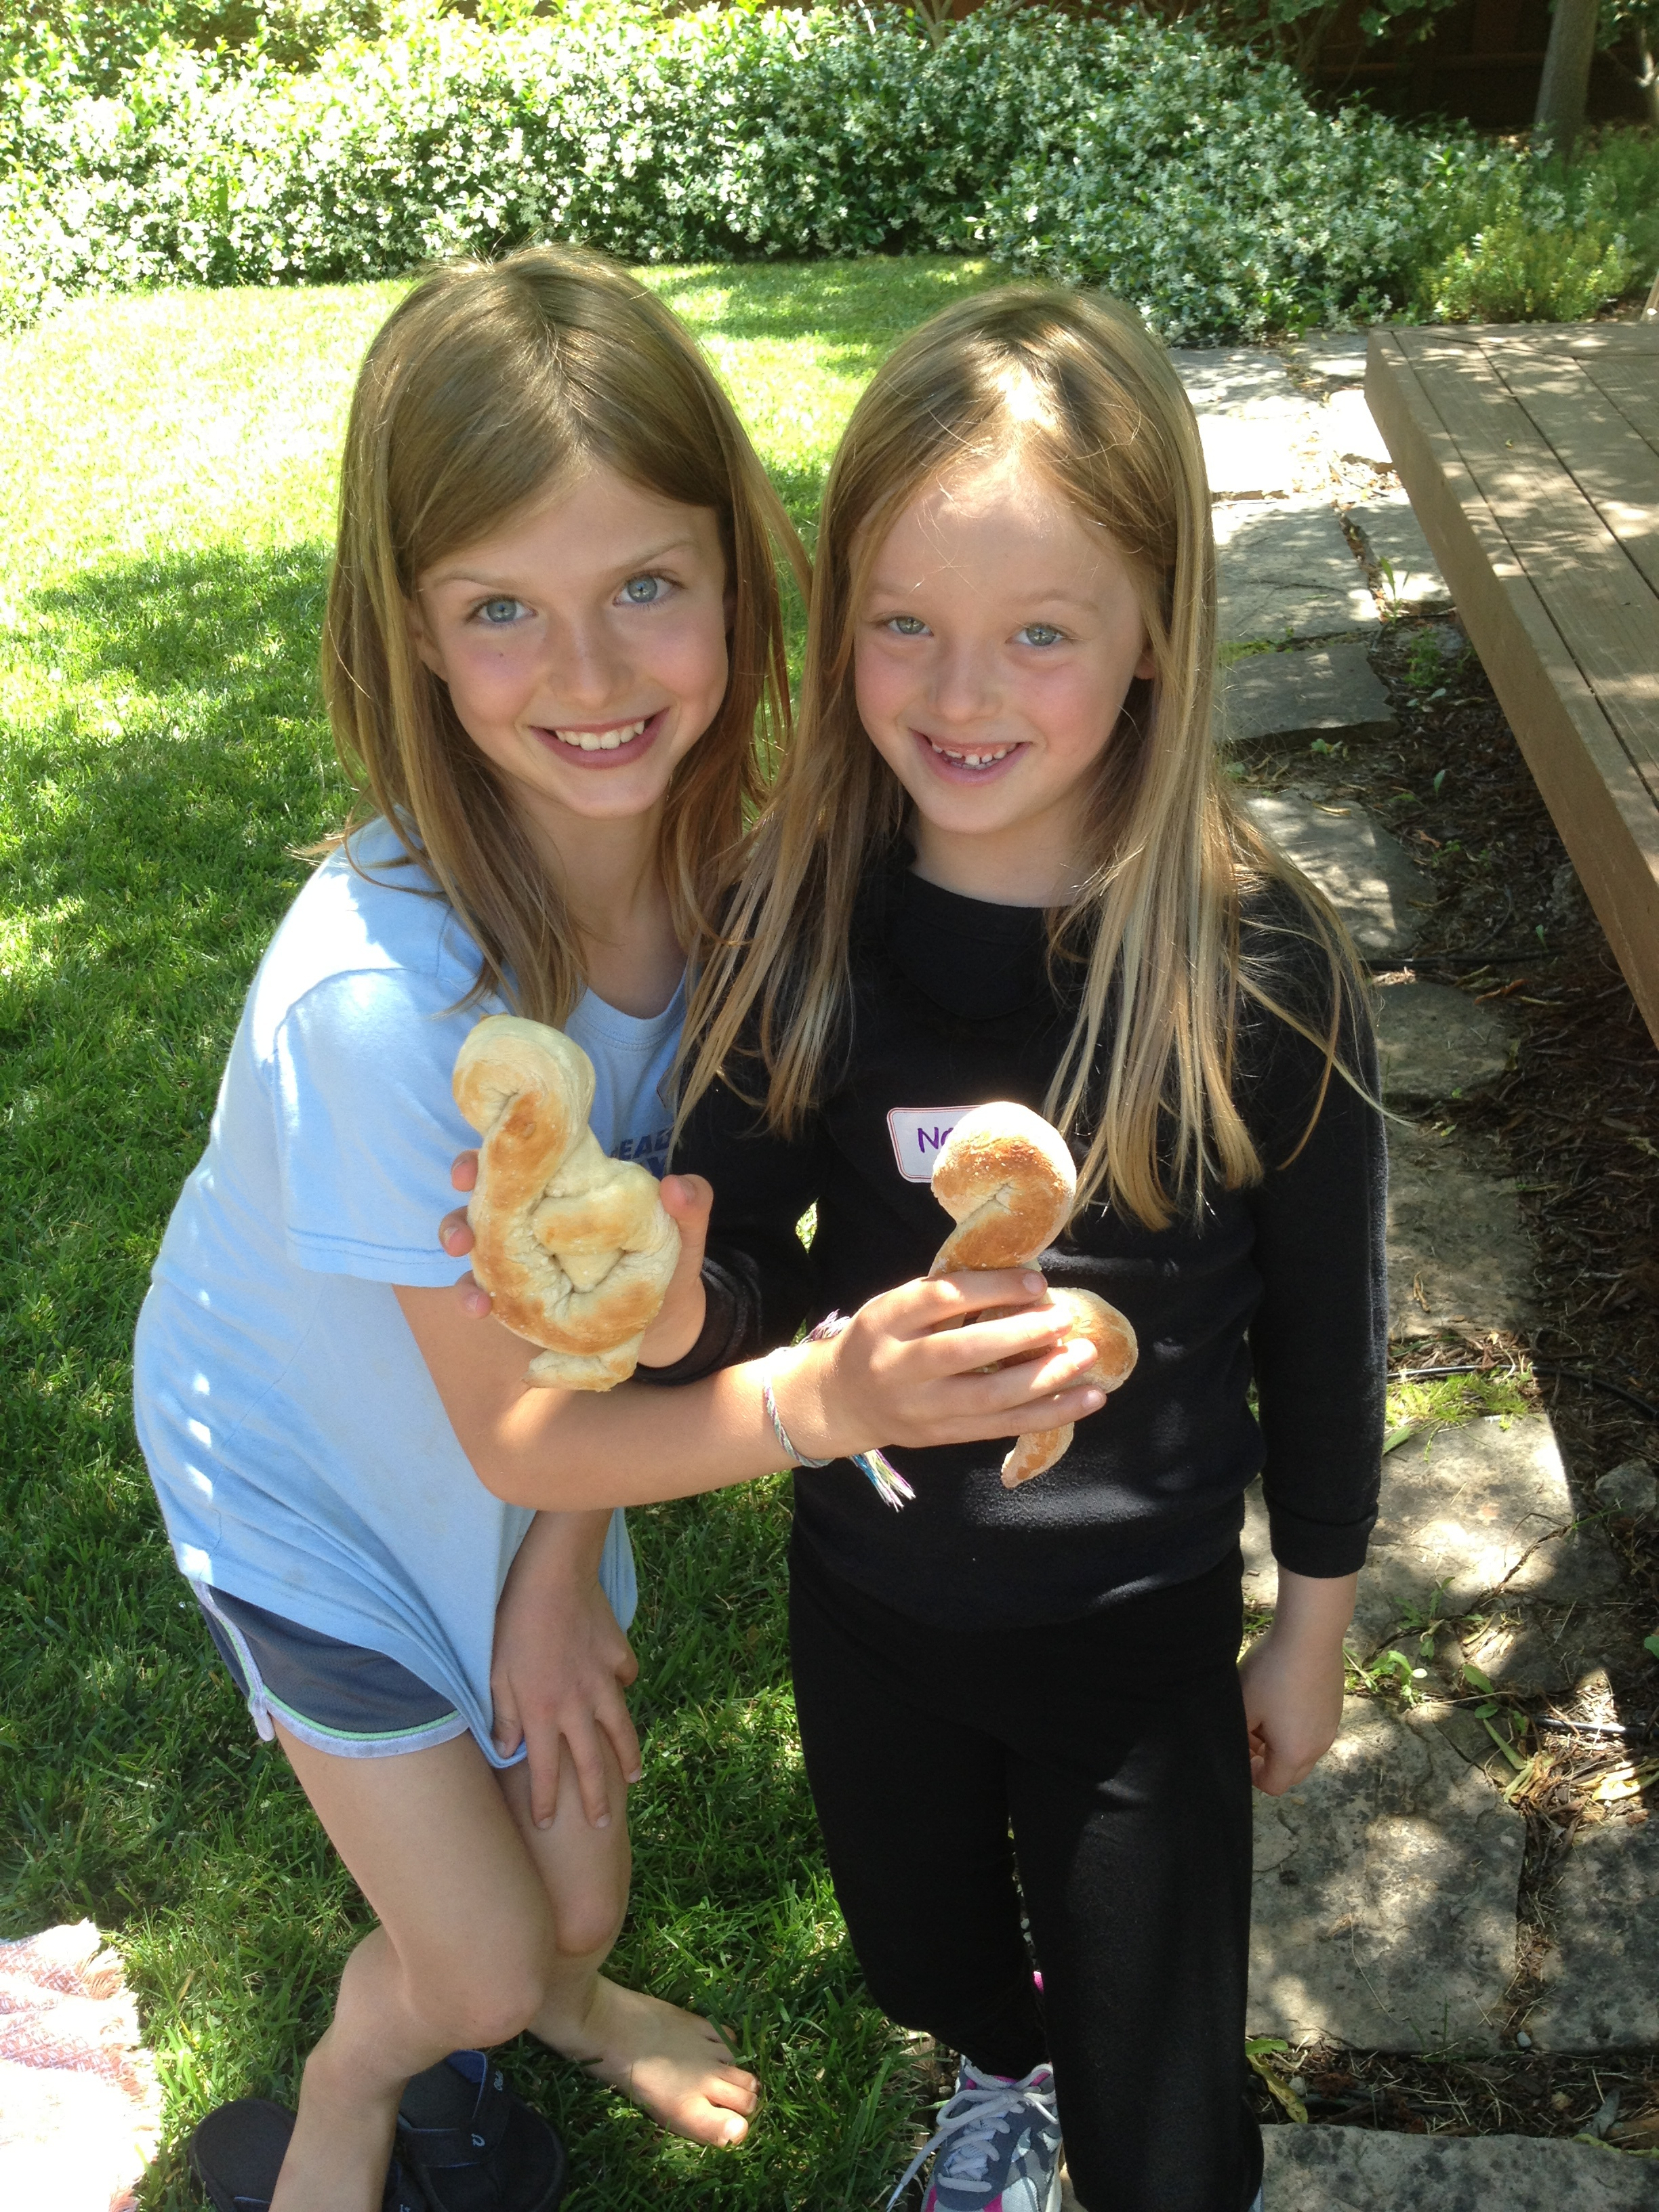 Violin Summer Campers with their delicious treble clef pretzels!